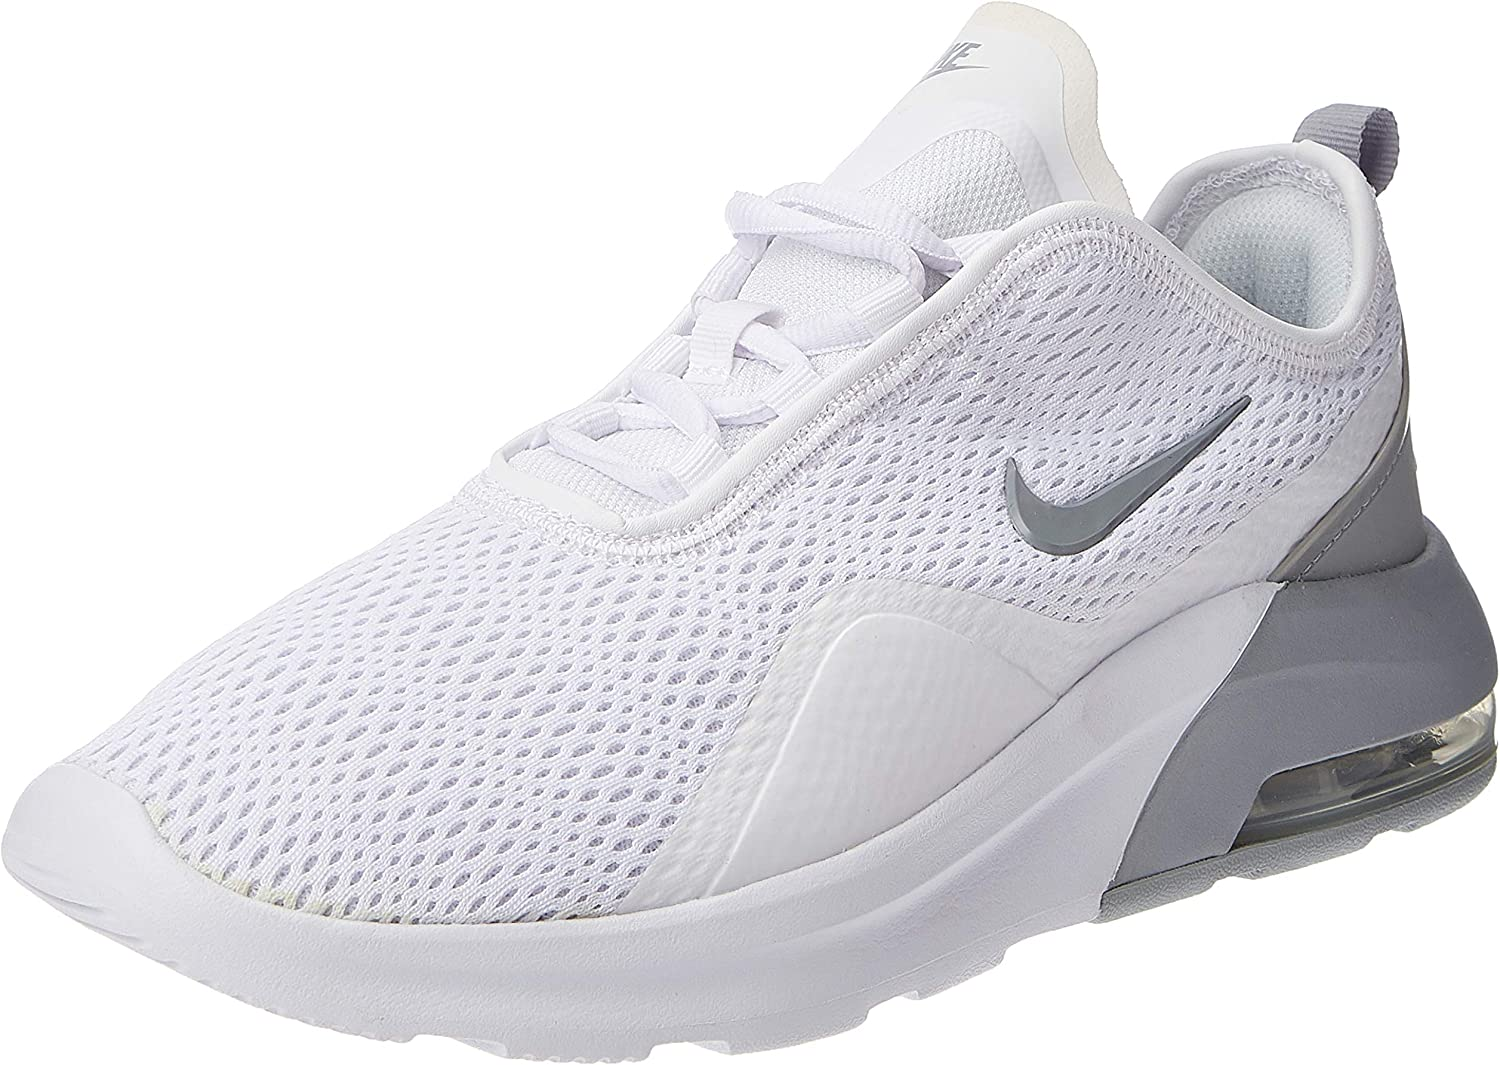 Nike Air Max Motion 2 NoirBlanche AO0266 003